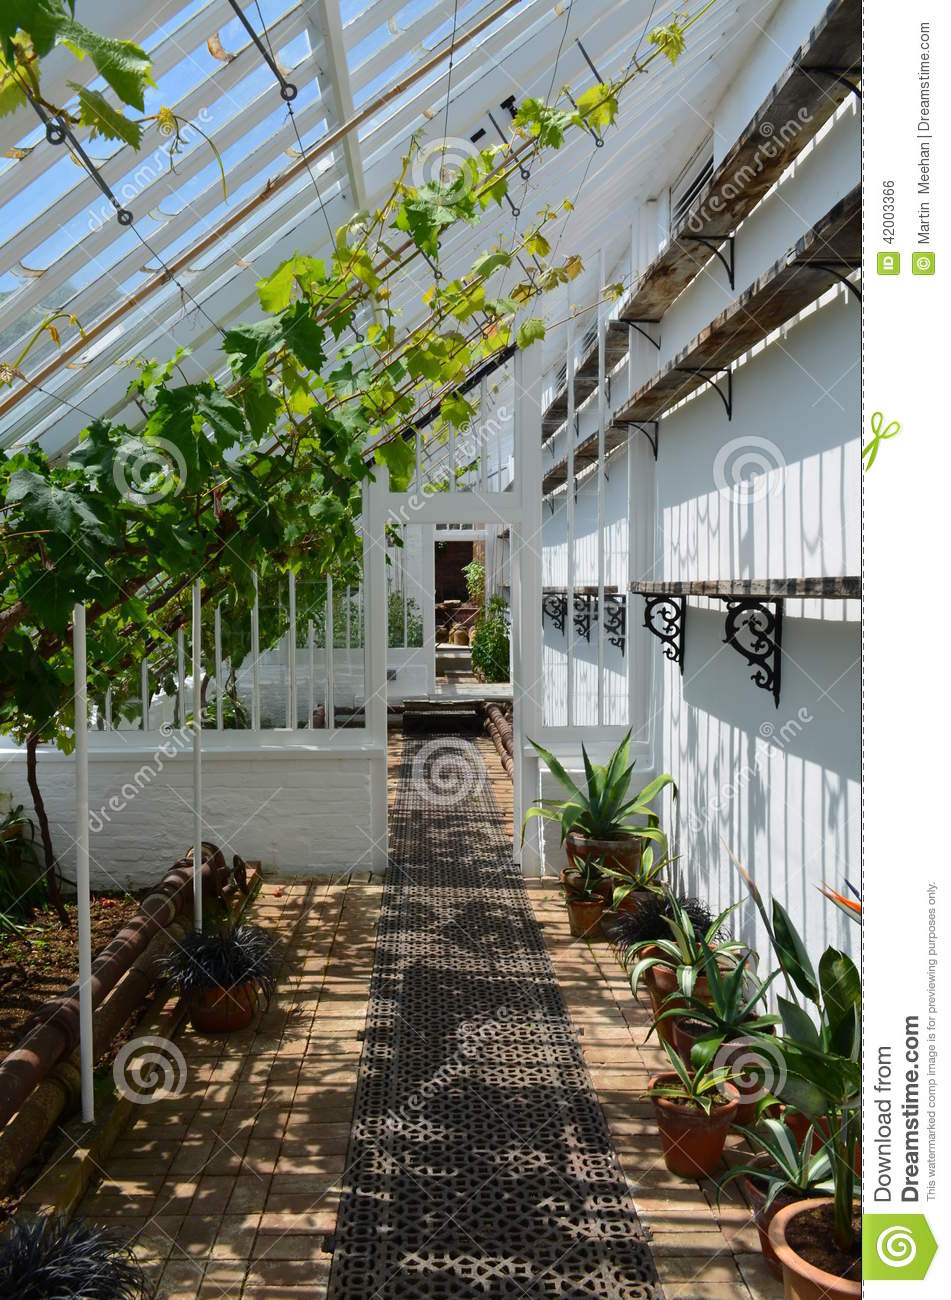 Interior Of A Large Garden Greenhouse Stock Photo Image